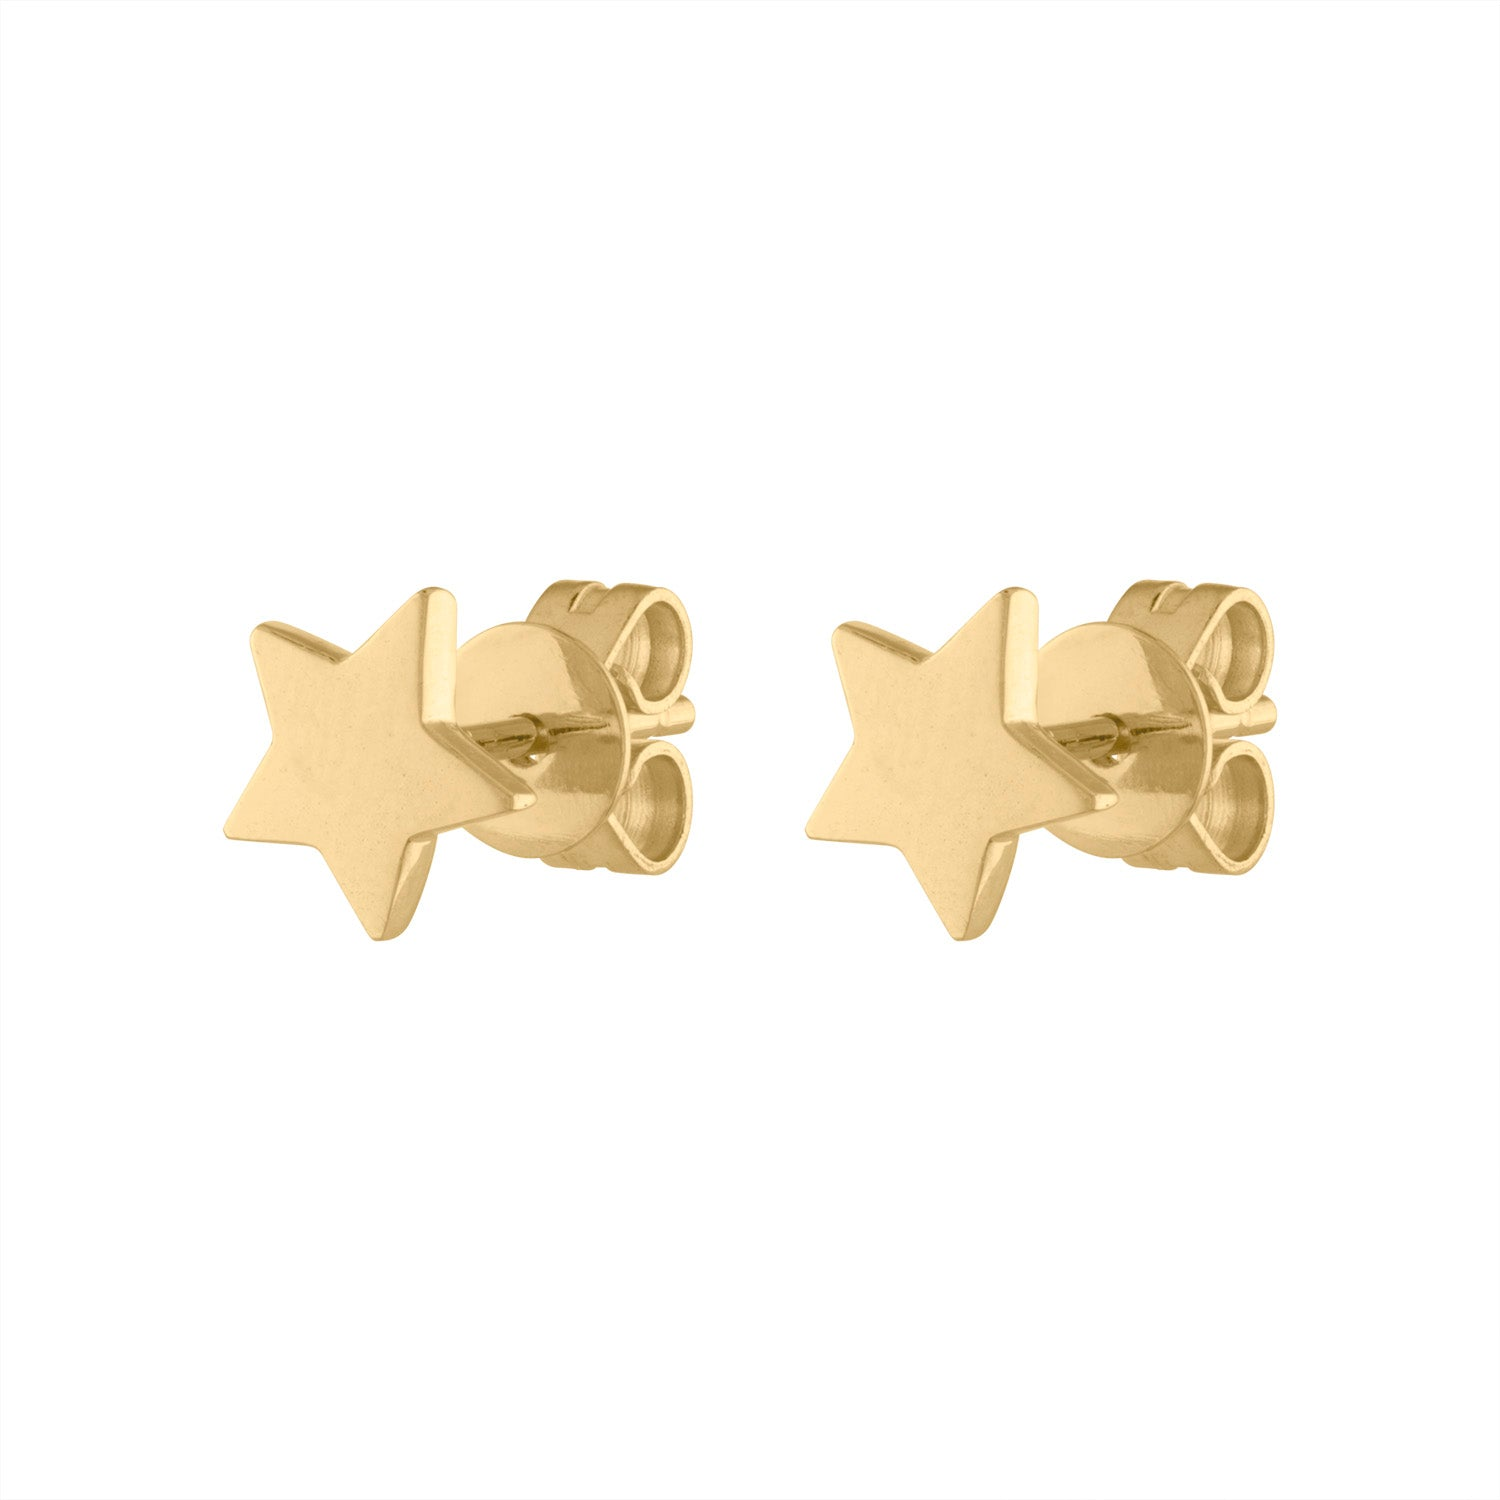 14KT GOLD PLAIN STAR EARRING